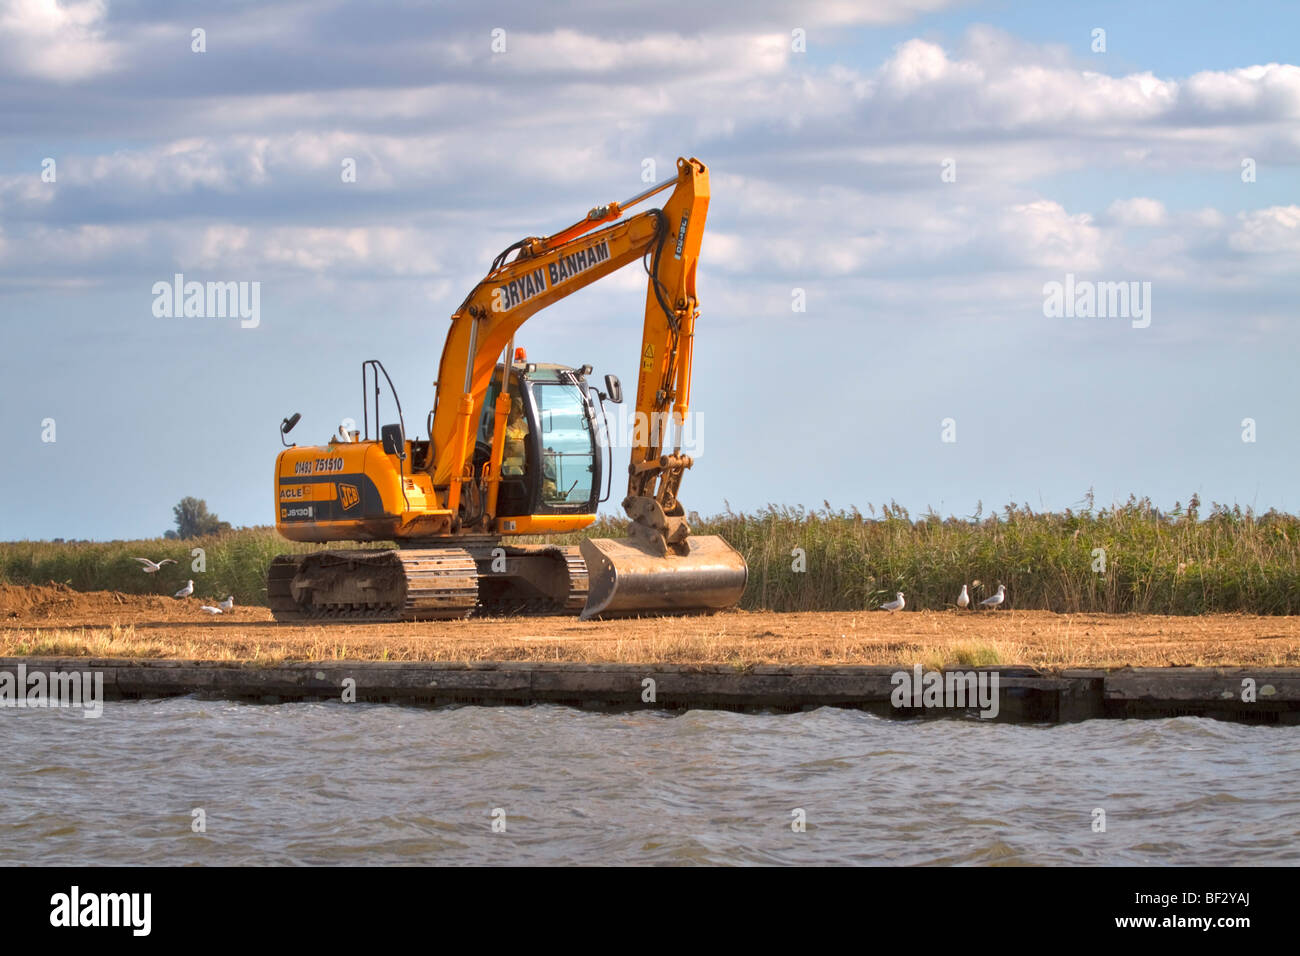 A JCB on the banks of the River Bure in Norfolk - Stock Image